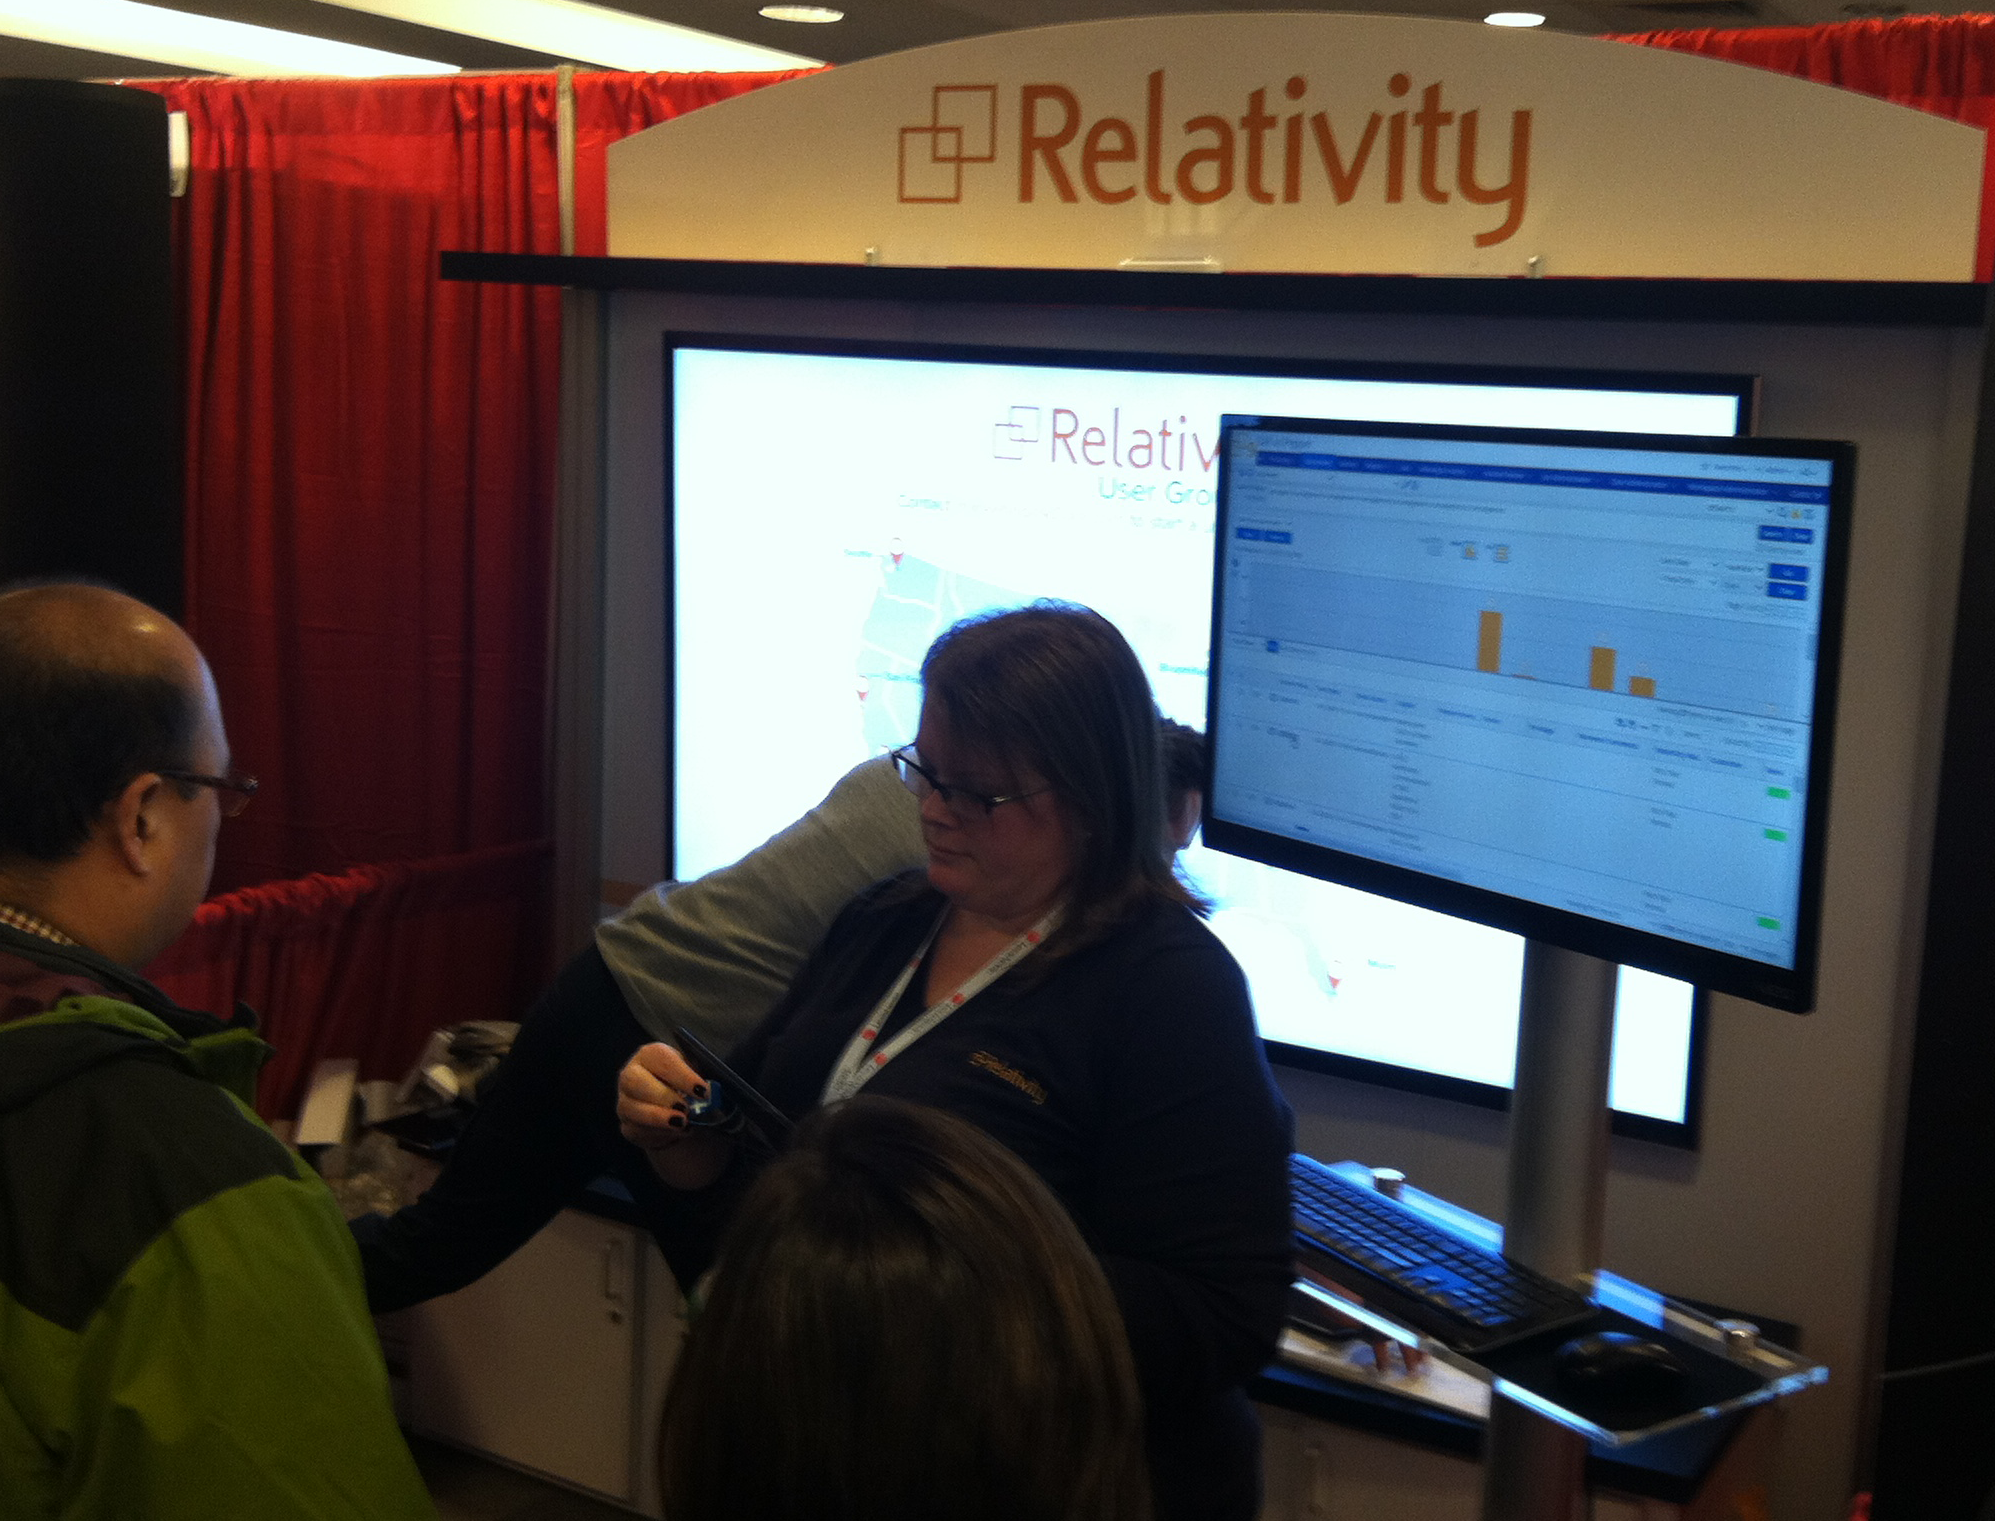 Relativity Booth LegalTech NYC